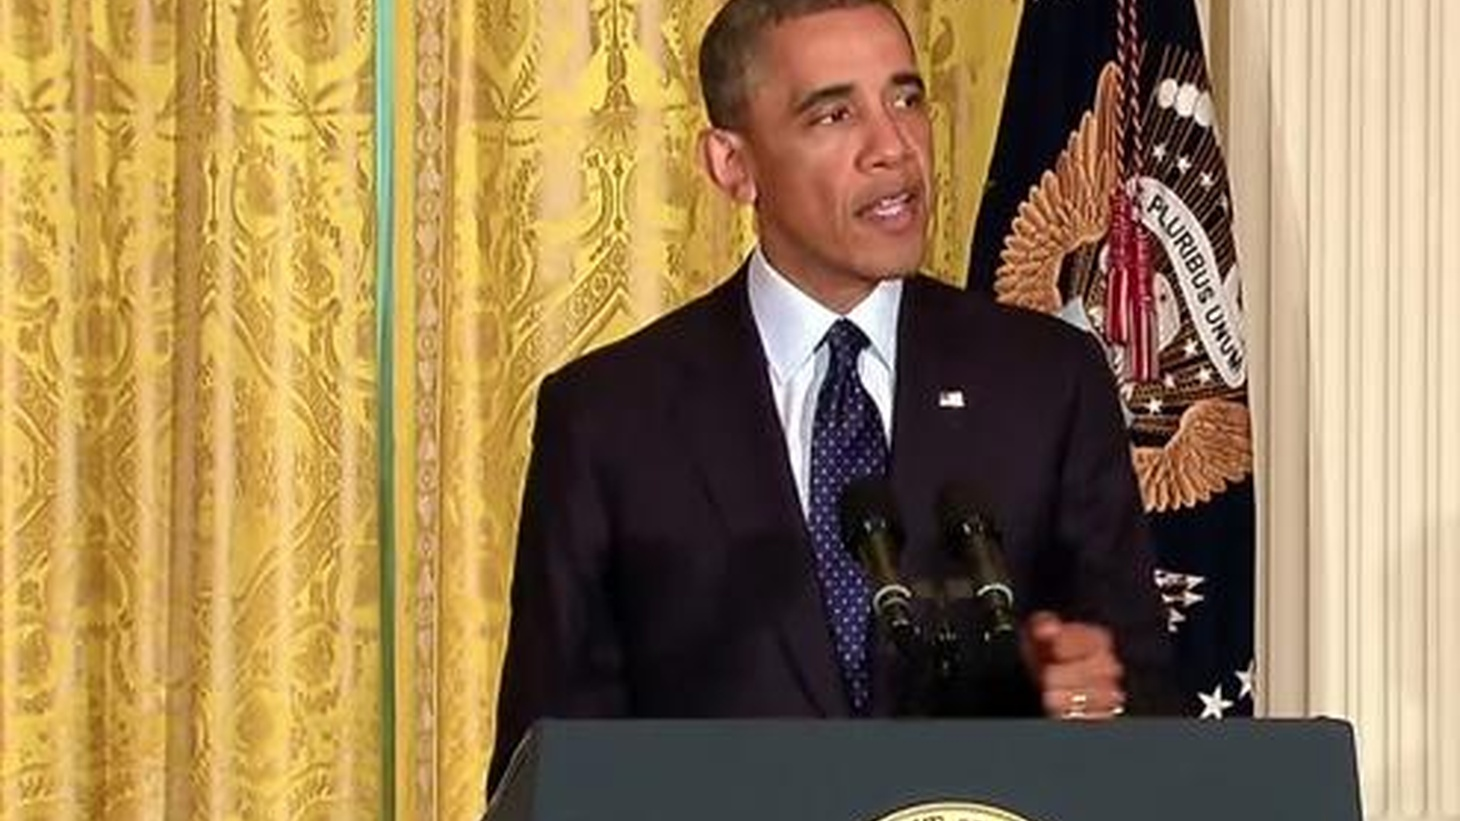 Today at 11am, President Obama will discuss his plans for Guantánamo, the administration's use of drones, counterterrorism and wiretaps on reporters.